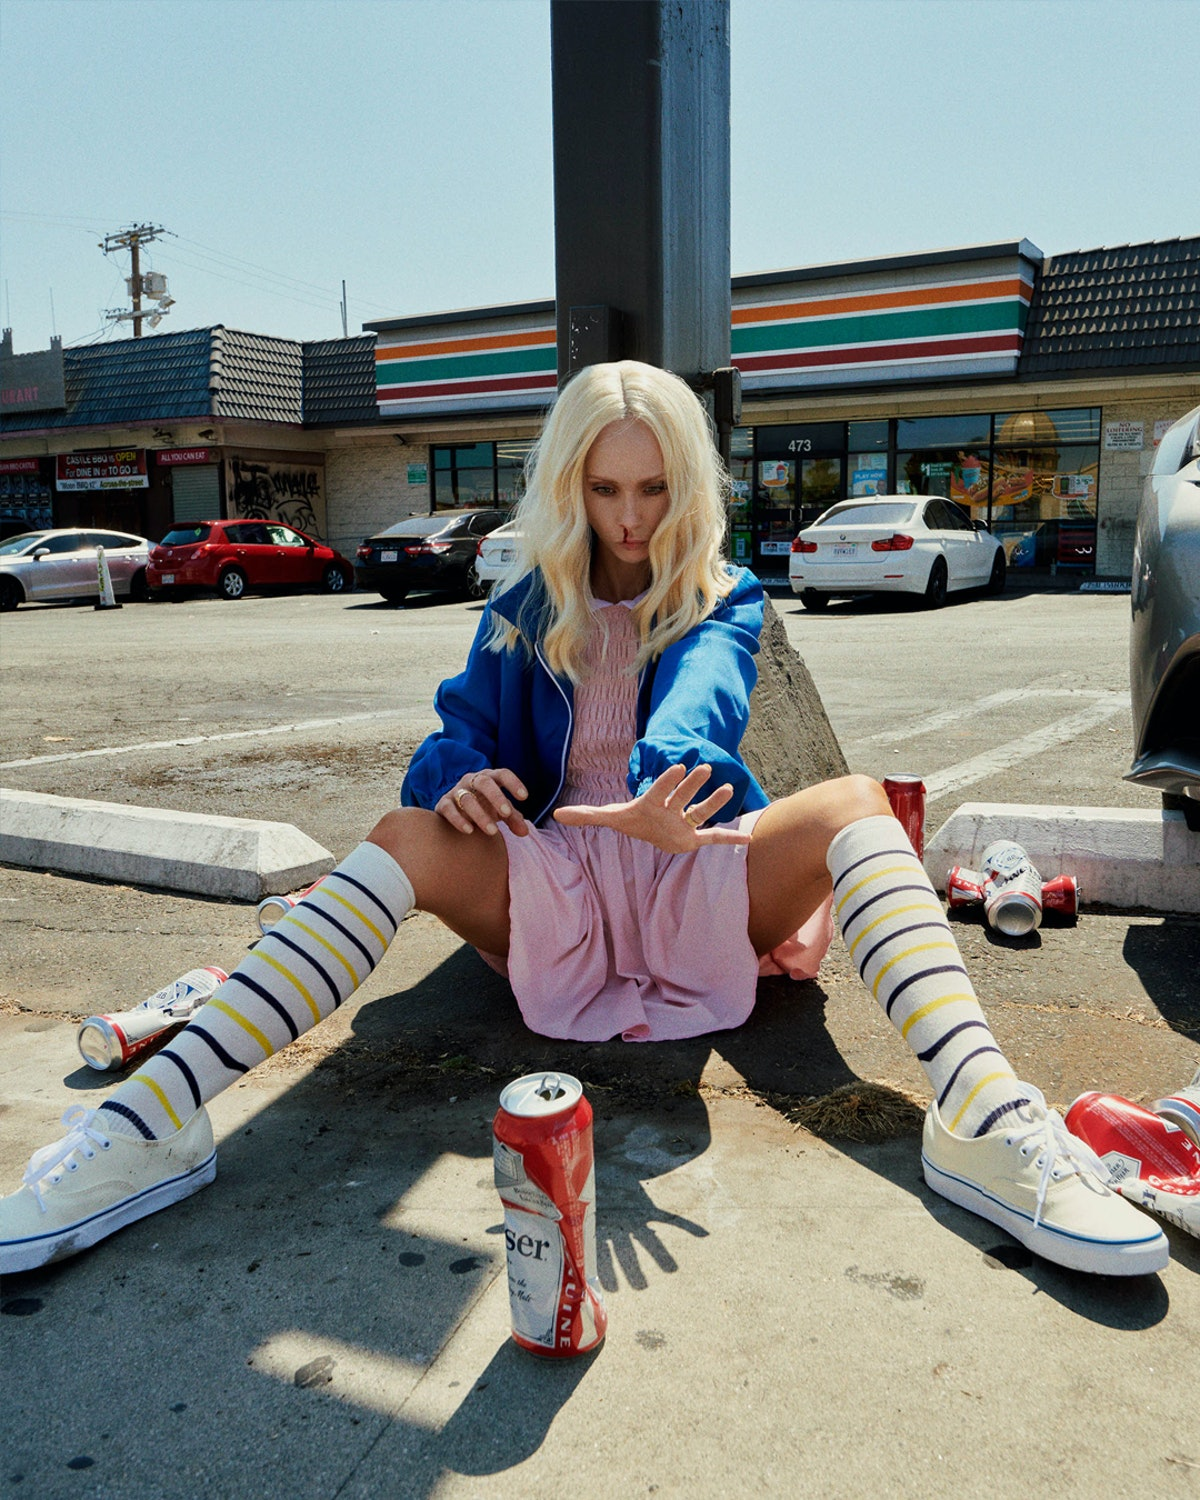 Juno Temple as Eleven from Stranger Things